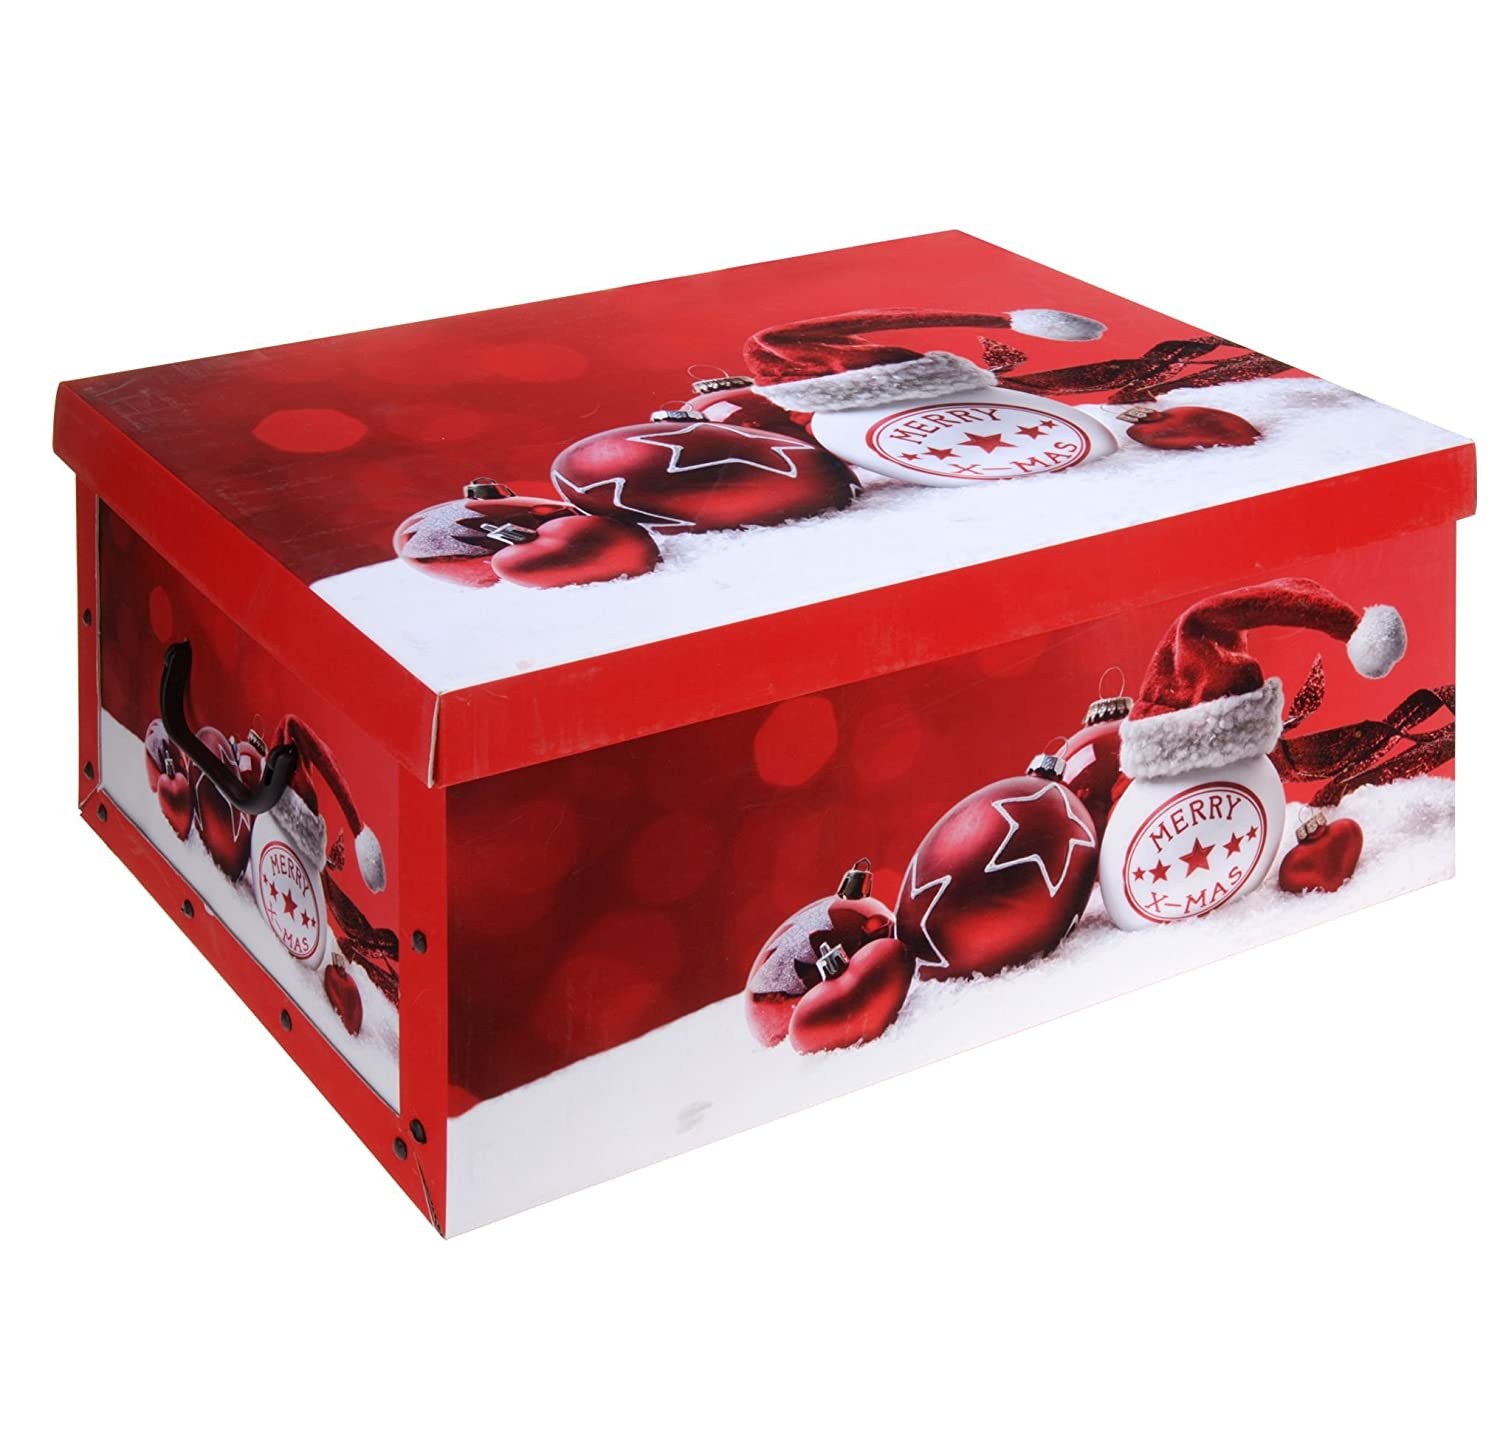 Christmas Xmas Design Cardboard Room Tidy Toy Storage Gift Box Chest Trunk (Red) Excellent Houseware